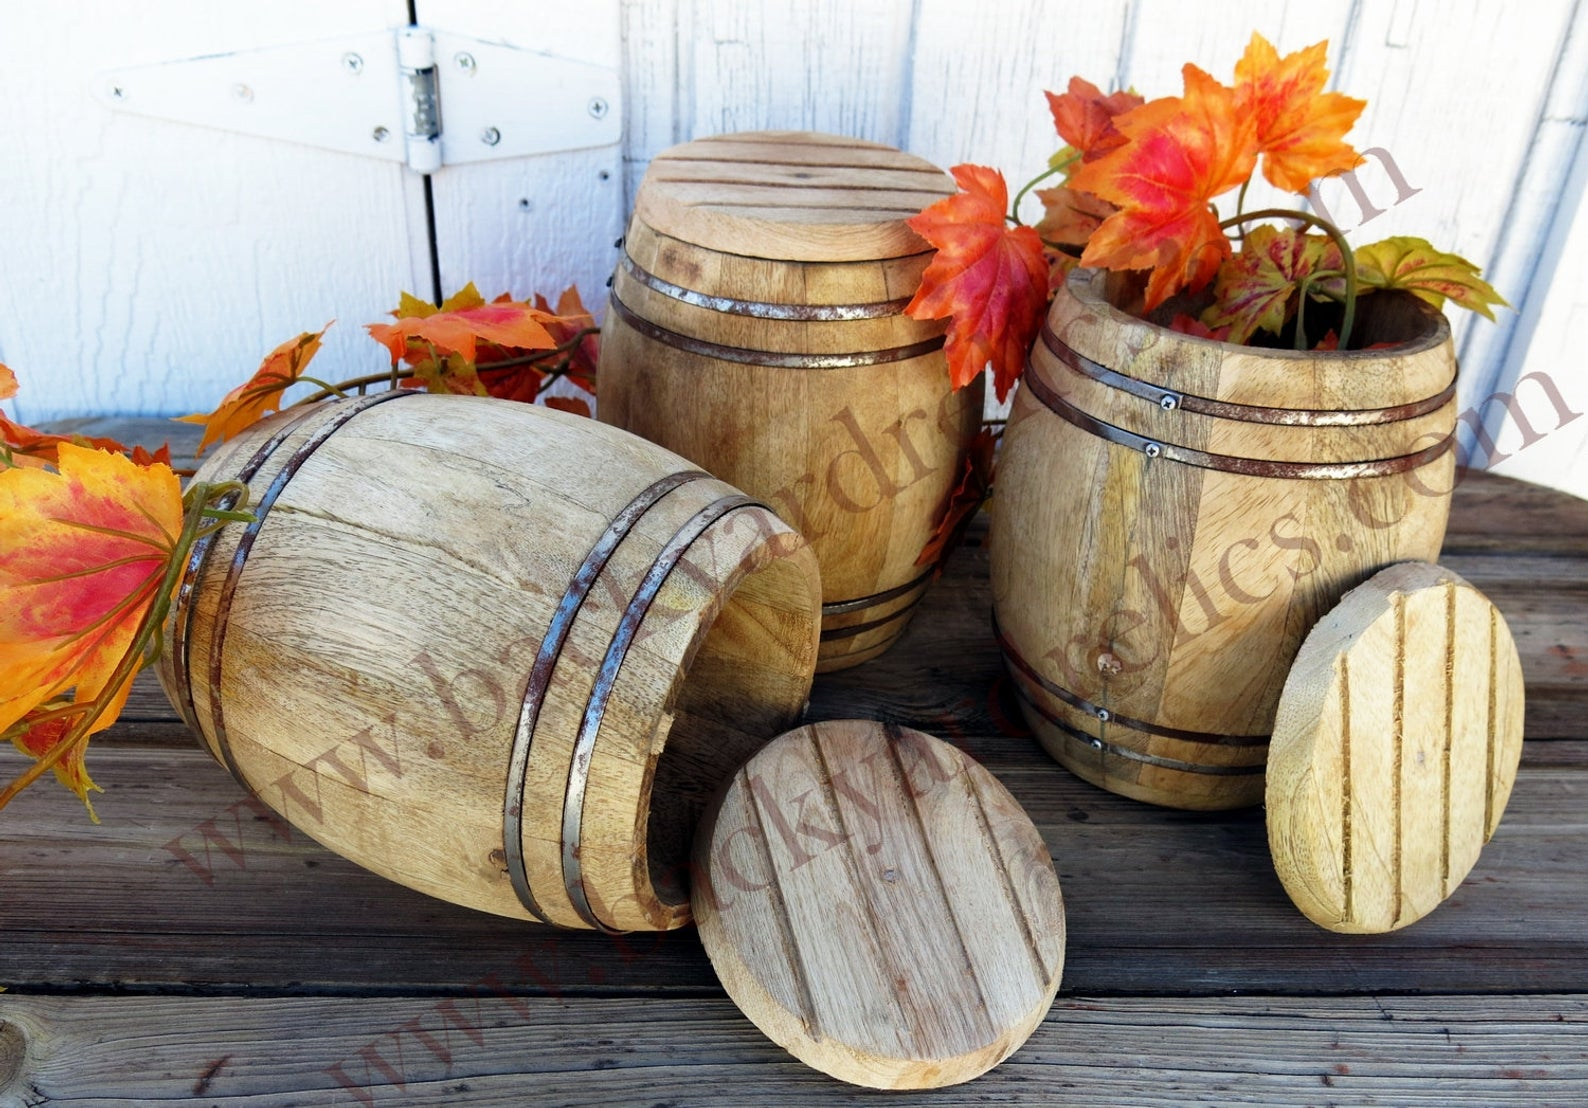 1 Small Wooden Barrel With One End Open 7 Tall Inset Steel Bands Country Christmas Centerpiece Usa Wooden Barrel Mini Whiskey Barrel Small Wooden Barrels